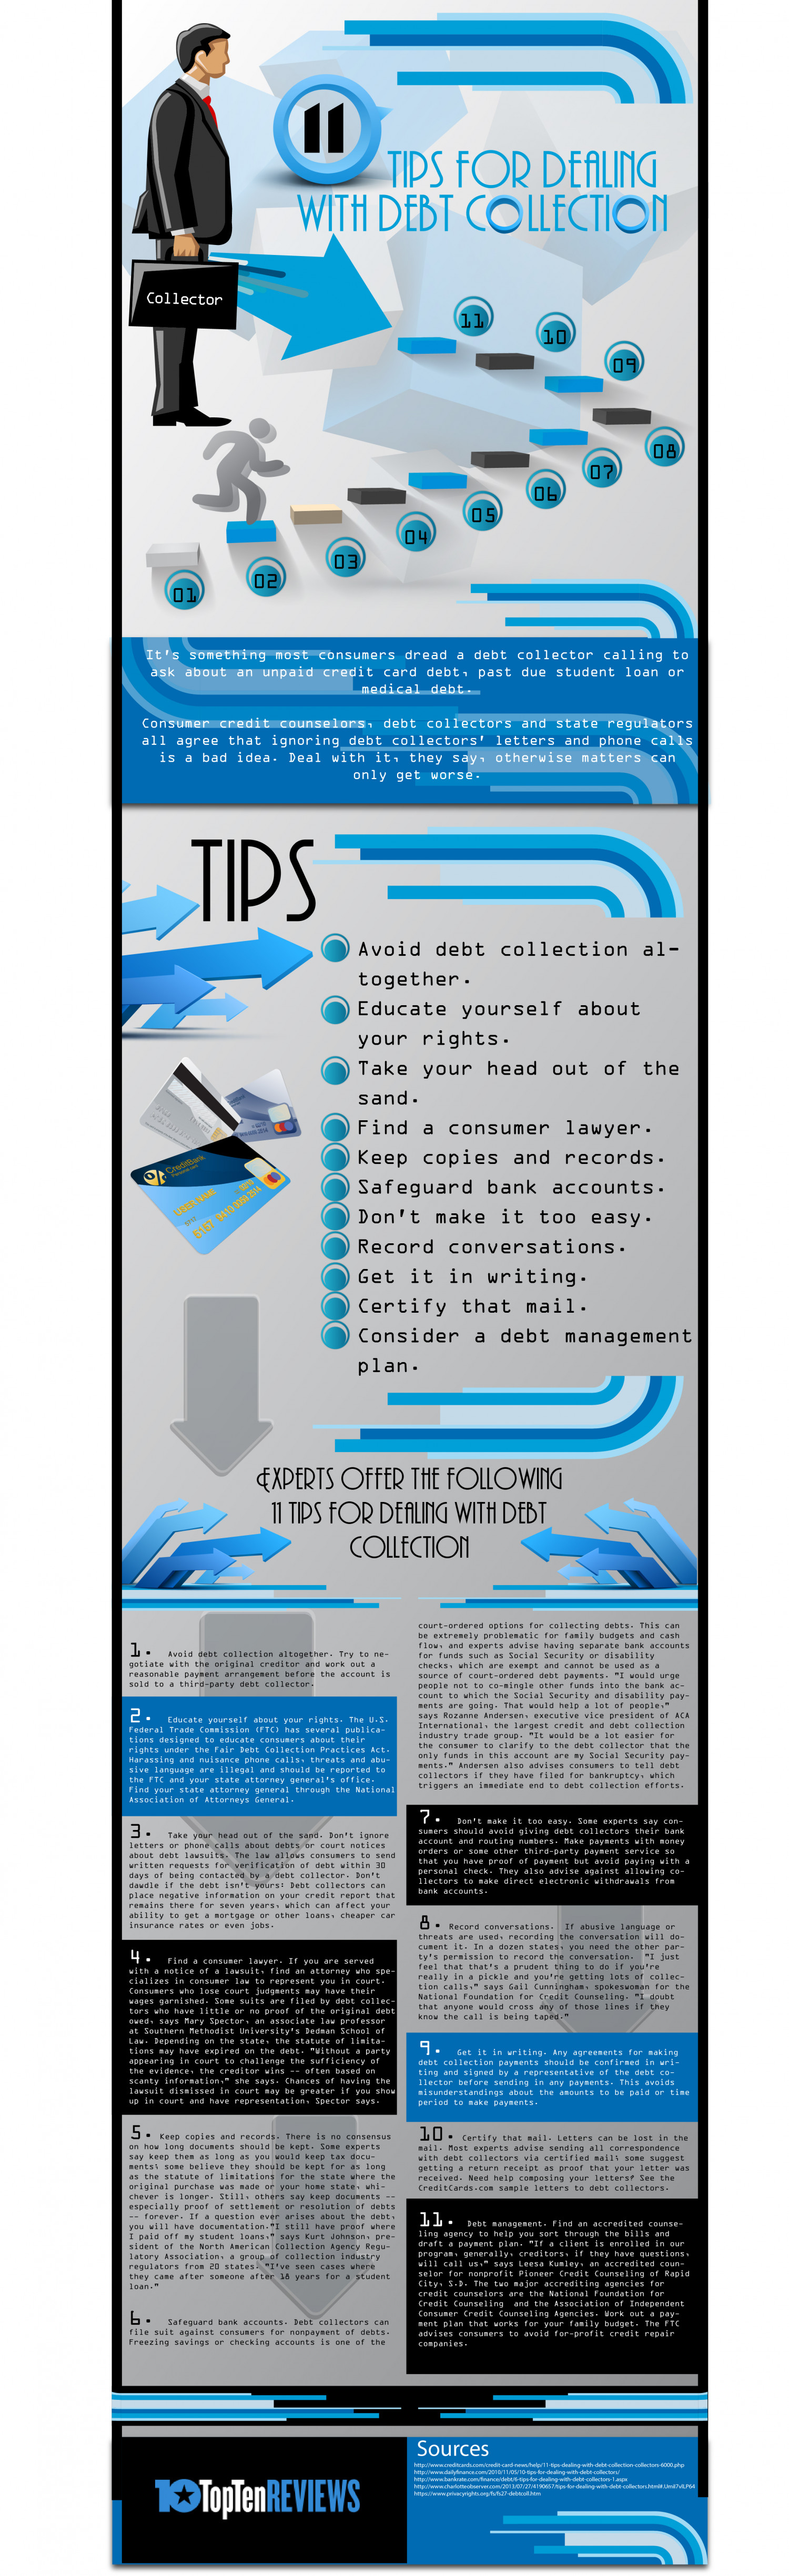 11 Tips for dealing with debt collectors Infographic